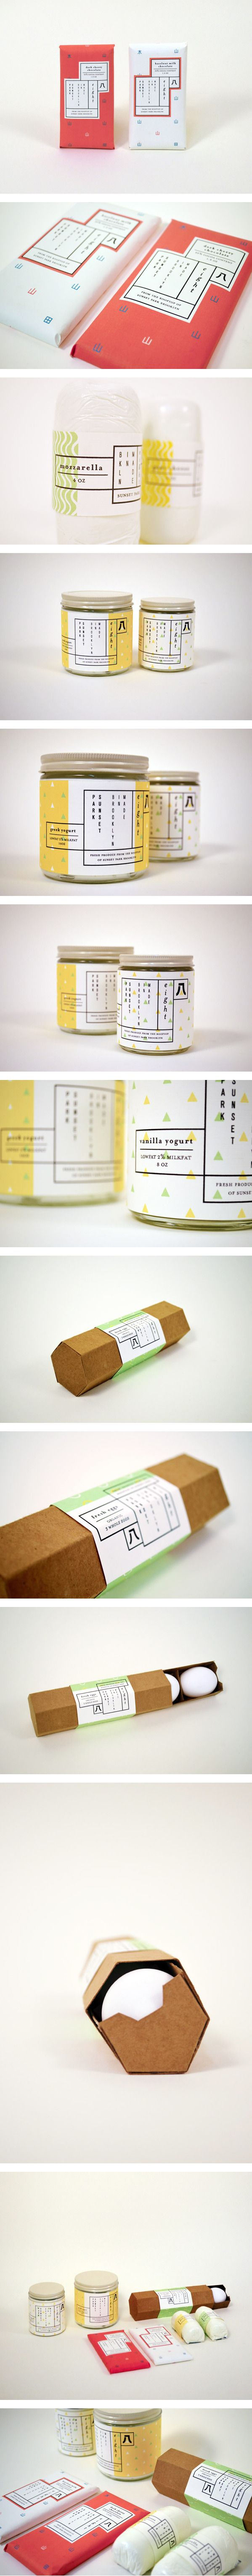 8 | Eight Rooftop Gardens Packaging by Esther Li. Great story behind the #packaging PD